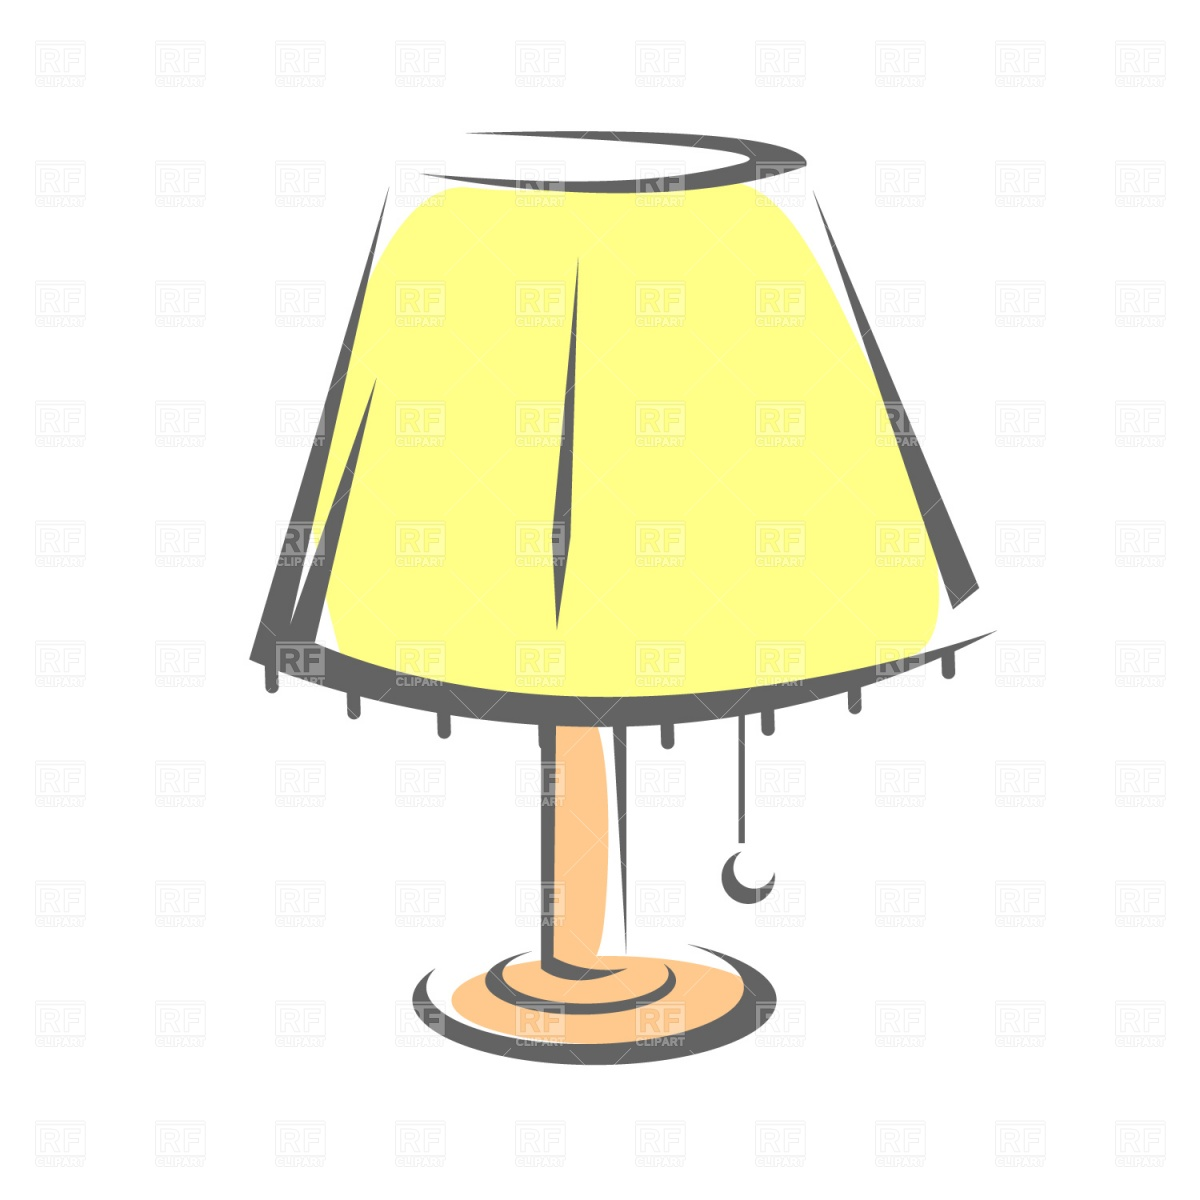 Royalty Free Desk Lamp Clip Art Vector Images: Light Shades Clipart